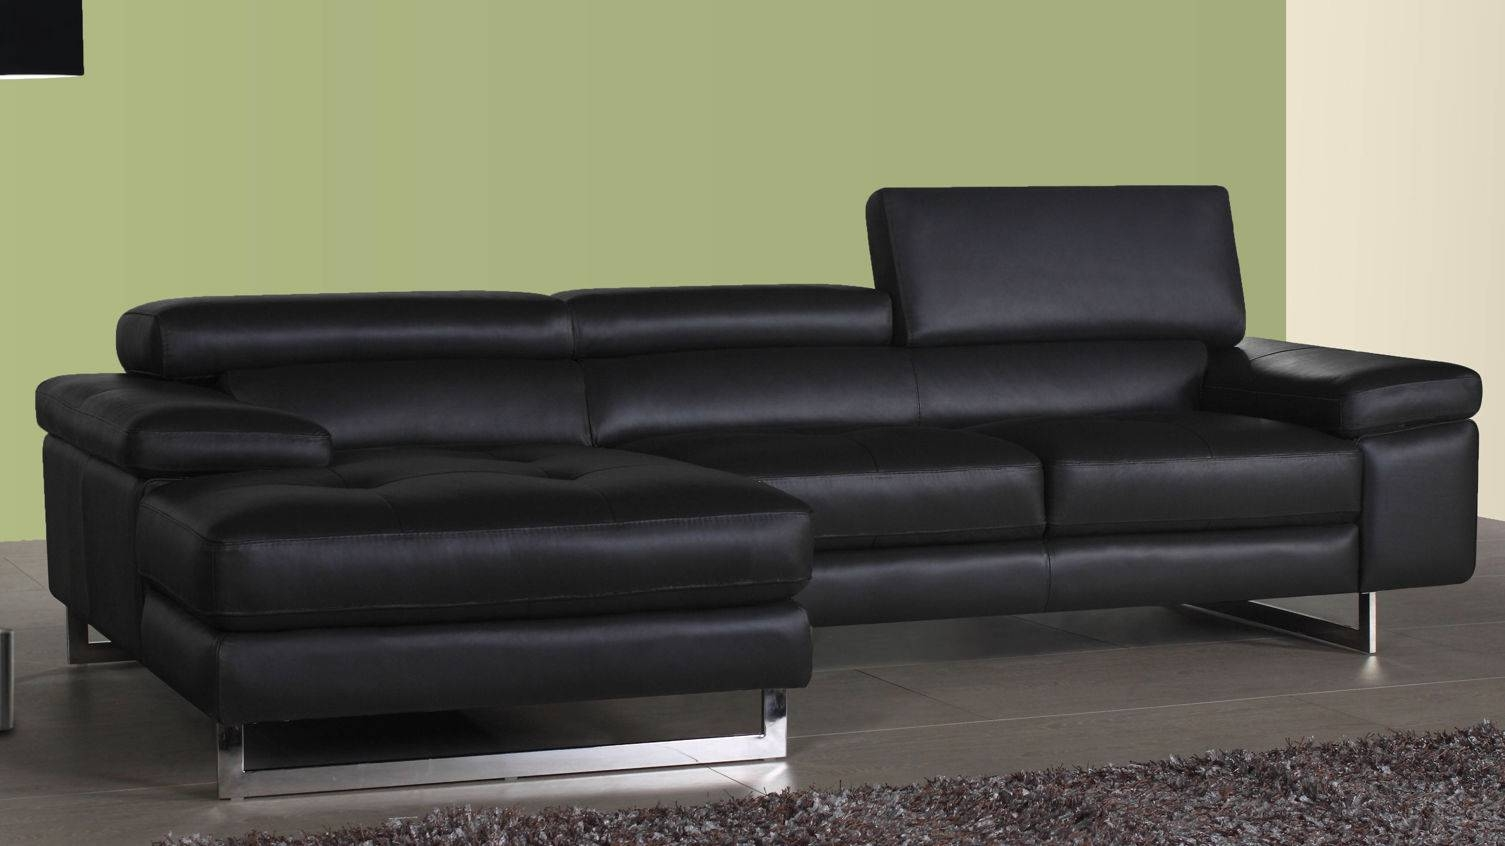 Leather Sofas Uk Modern | Centerfieldbar pertaining to Black Leather Corner Sofas (Image 12 of 15)